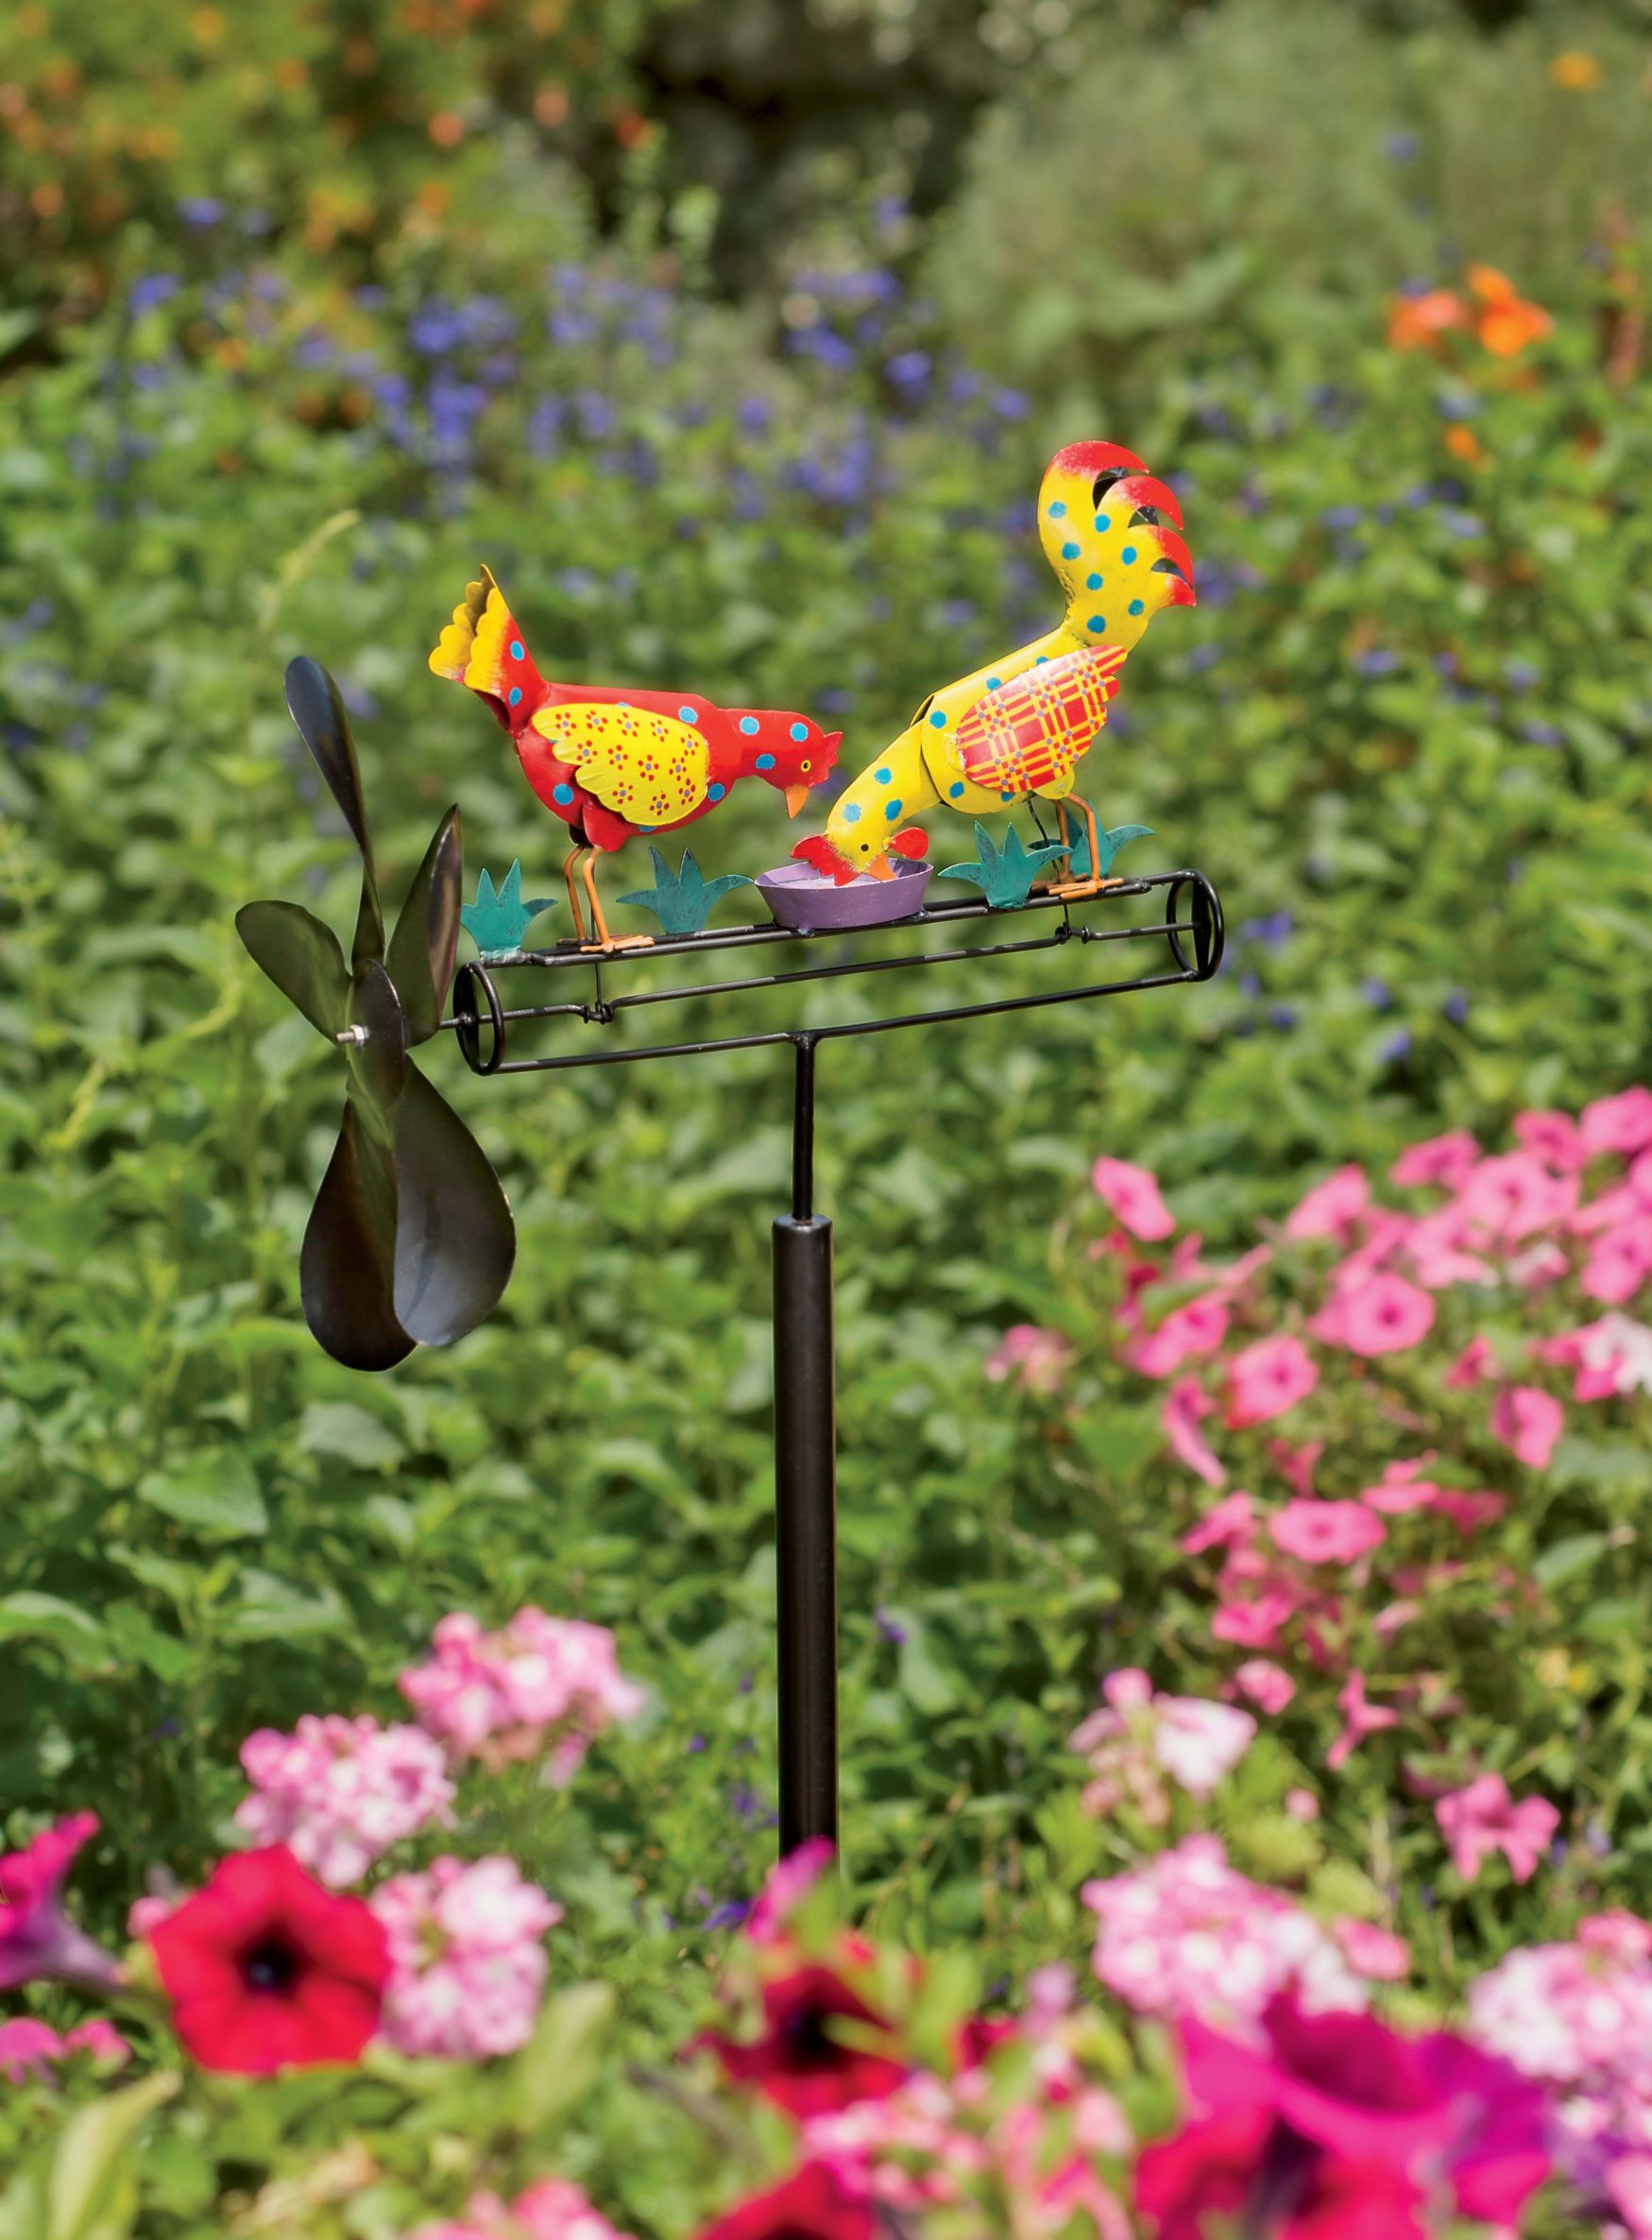 Whirligig: Calico Chicken Whirligig | Kinetic Garden Art Would Love To Have  This To Look